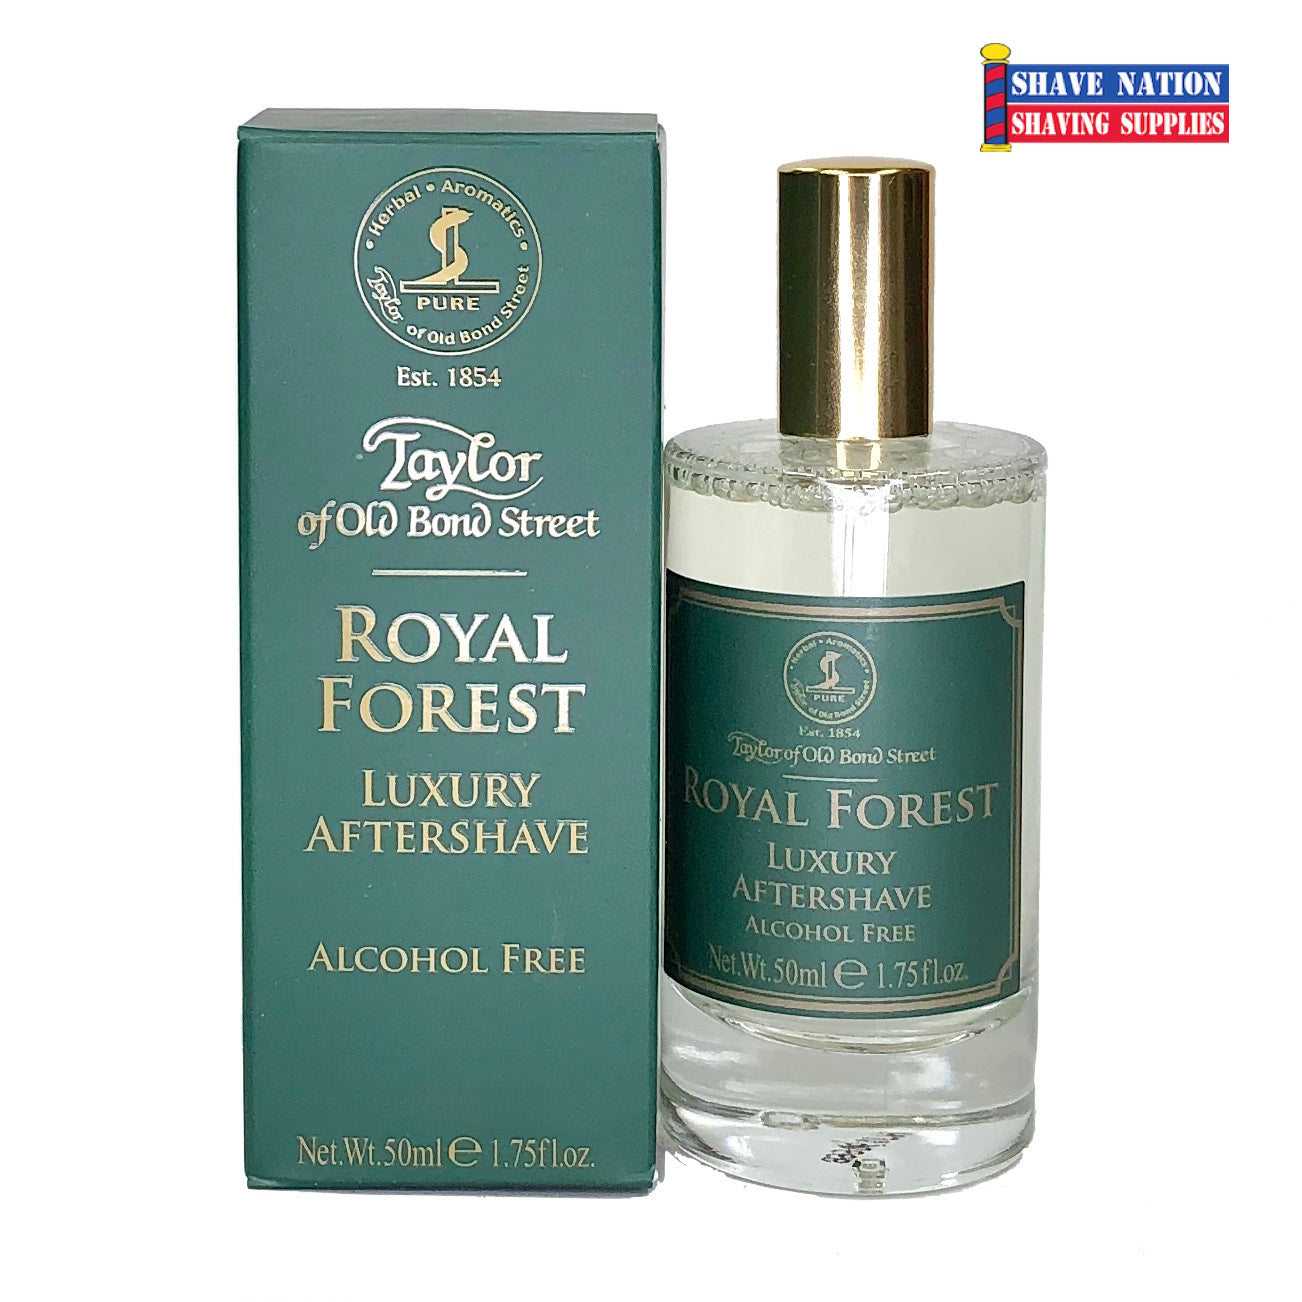 Taylor of Old Bond Street Royal Forest Luxury Aftershave (Alcohol Free)